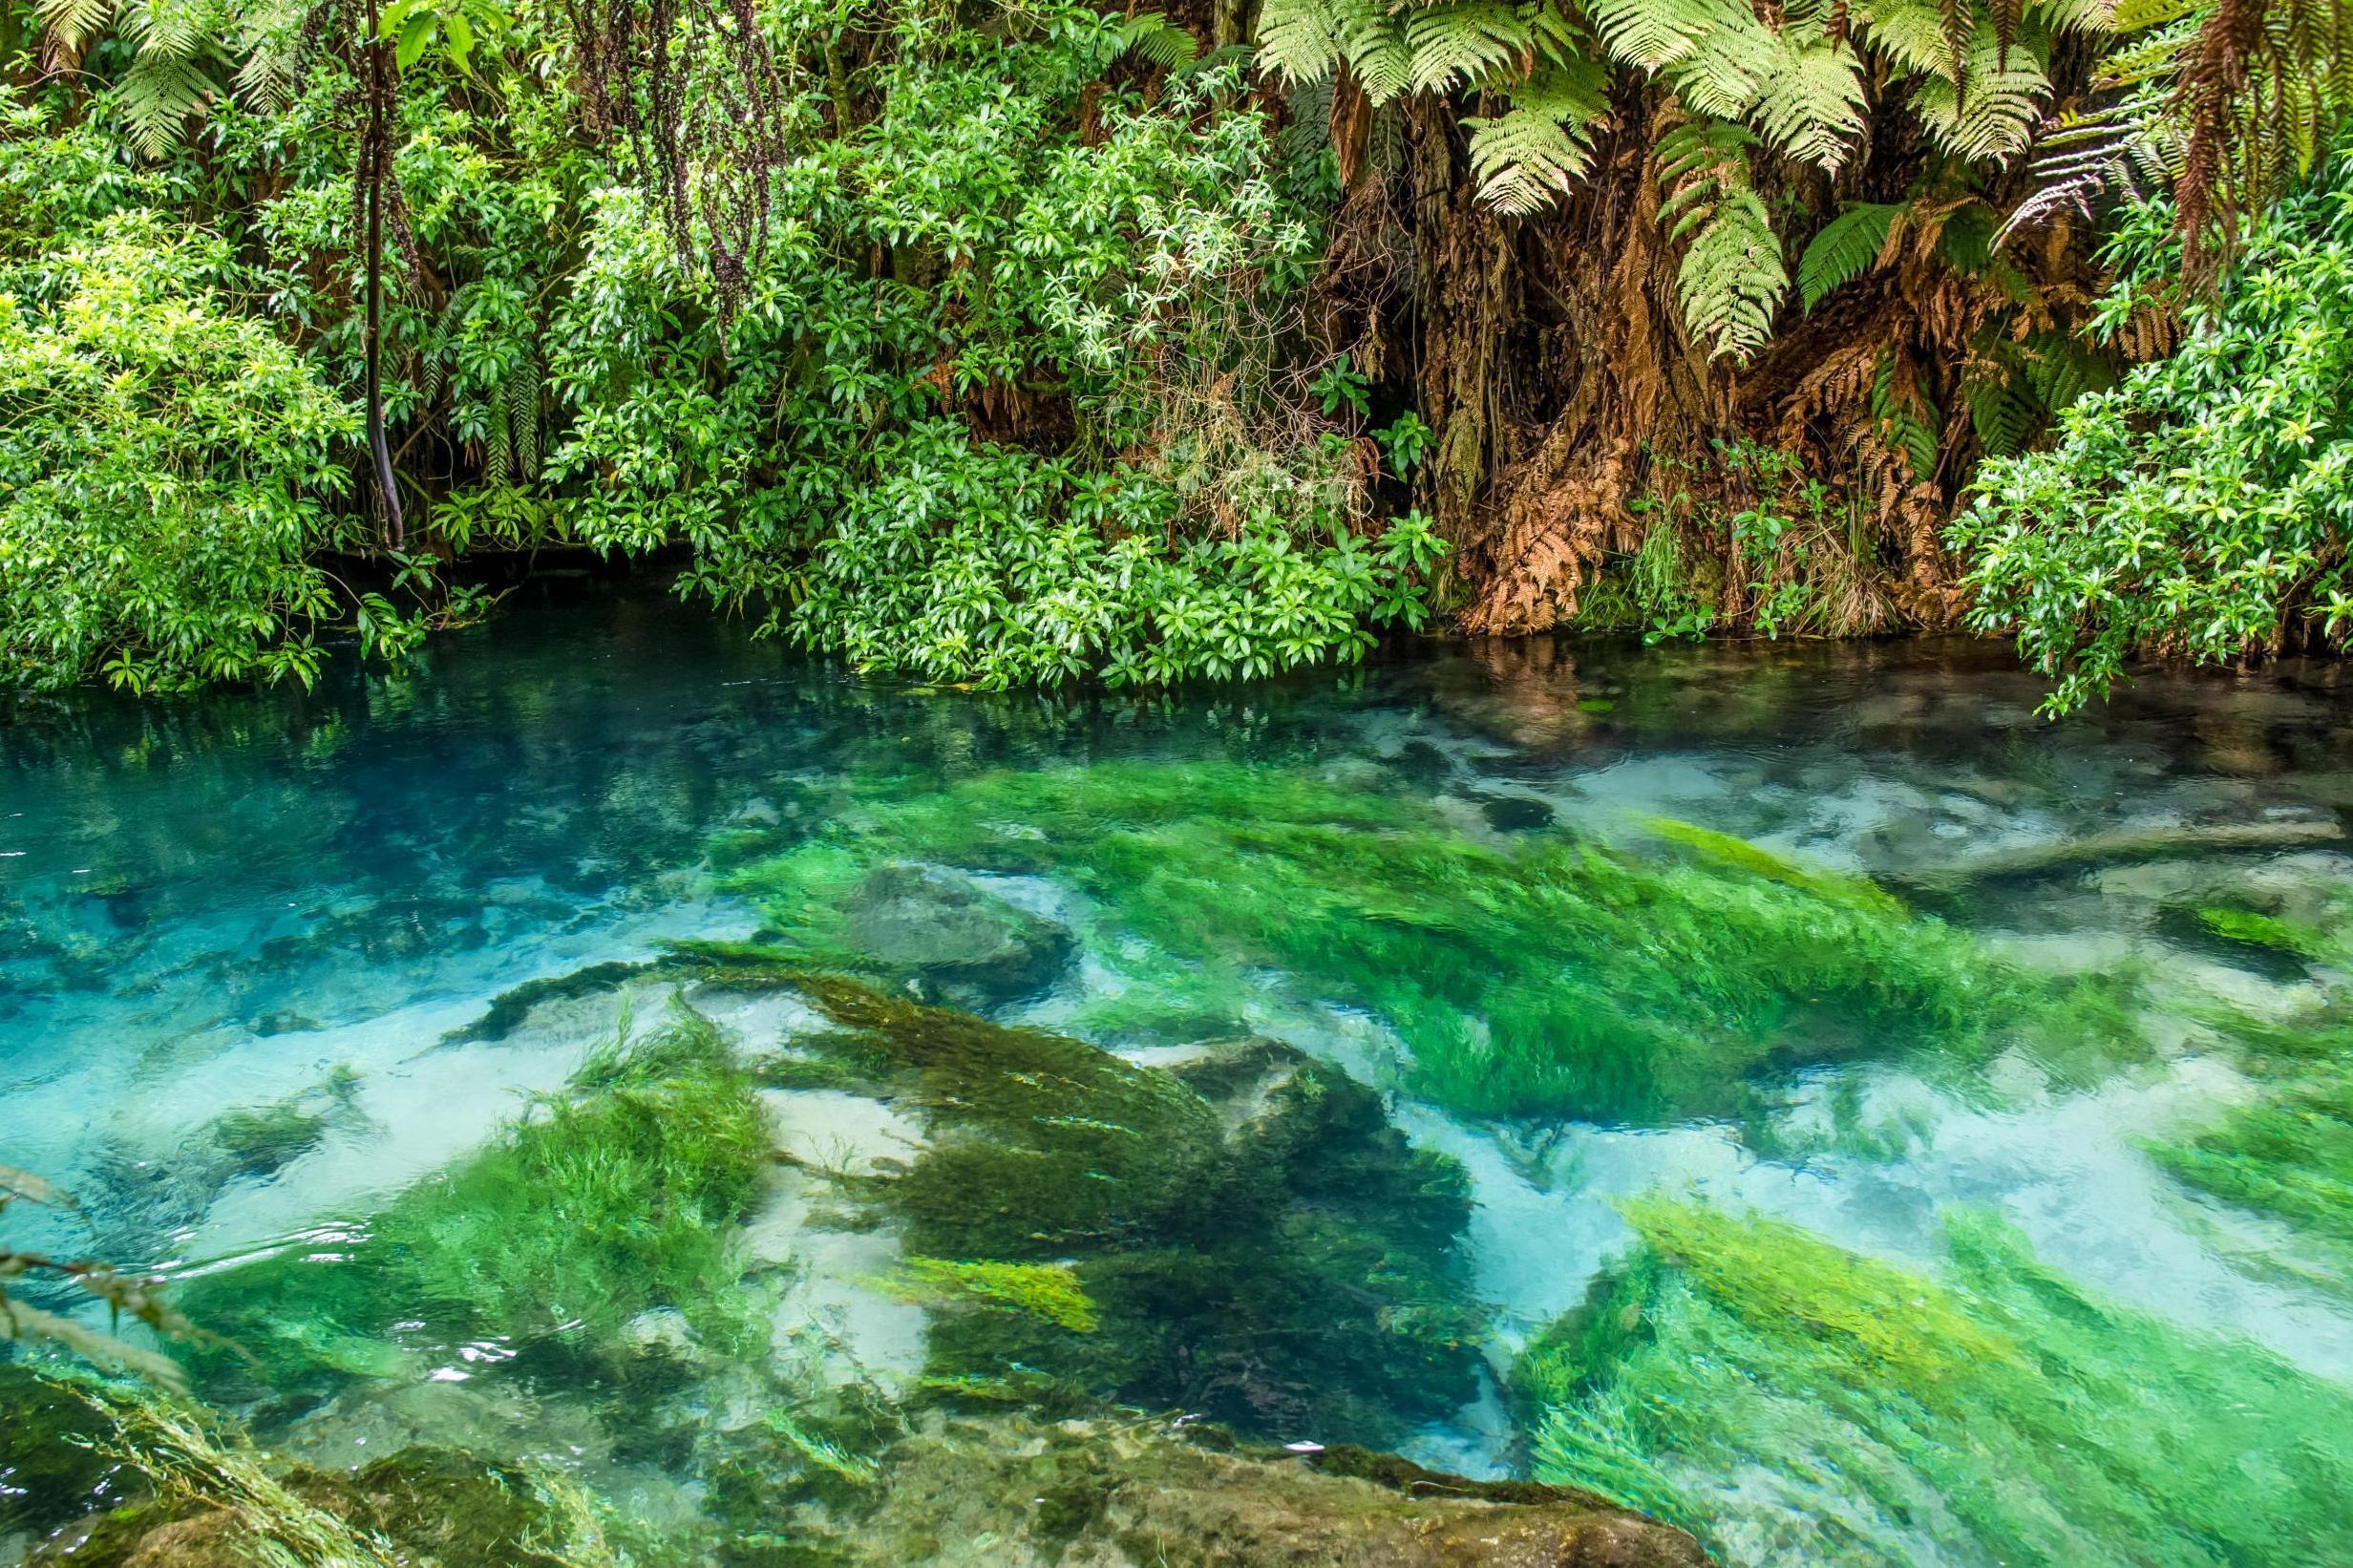 Instagram model criticised for allegedly swimming in New Zealand Blue Springs where visitors are banned